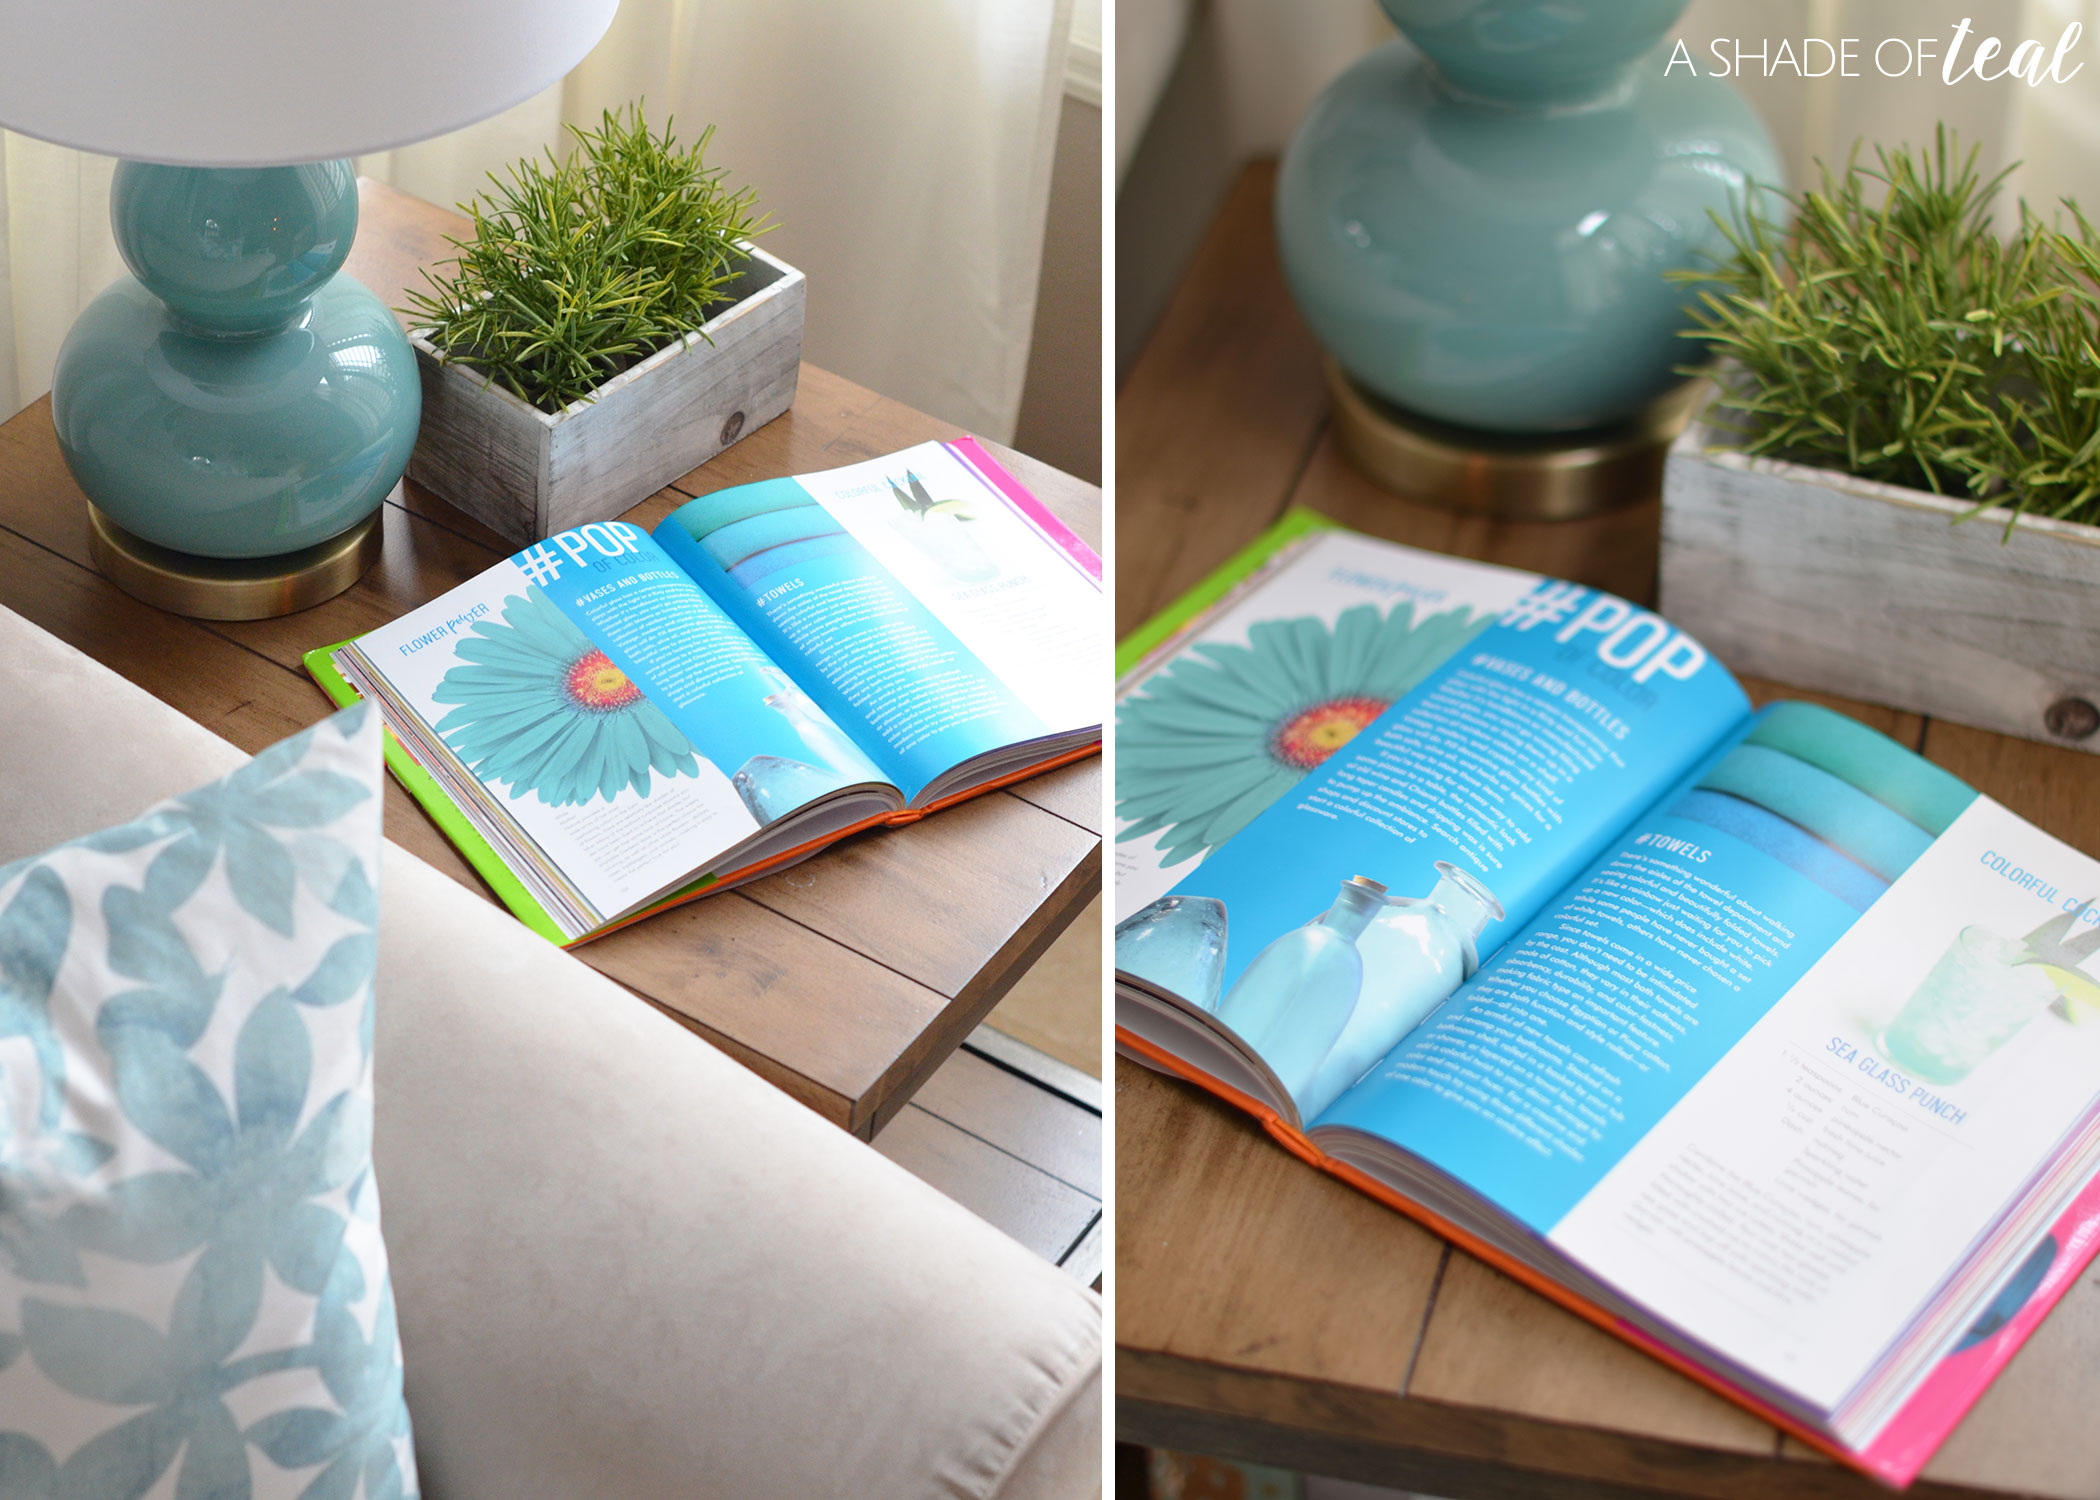 While Reading Change Your Home, Change Your Life™ With Color, I Also Found  Myself Drawn To Several Other Colors. Not Only Does Teal/Aqua/Turquoise  Play A ...